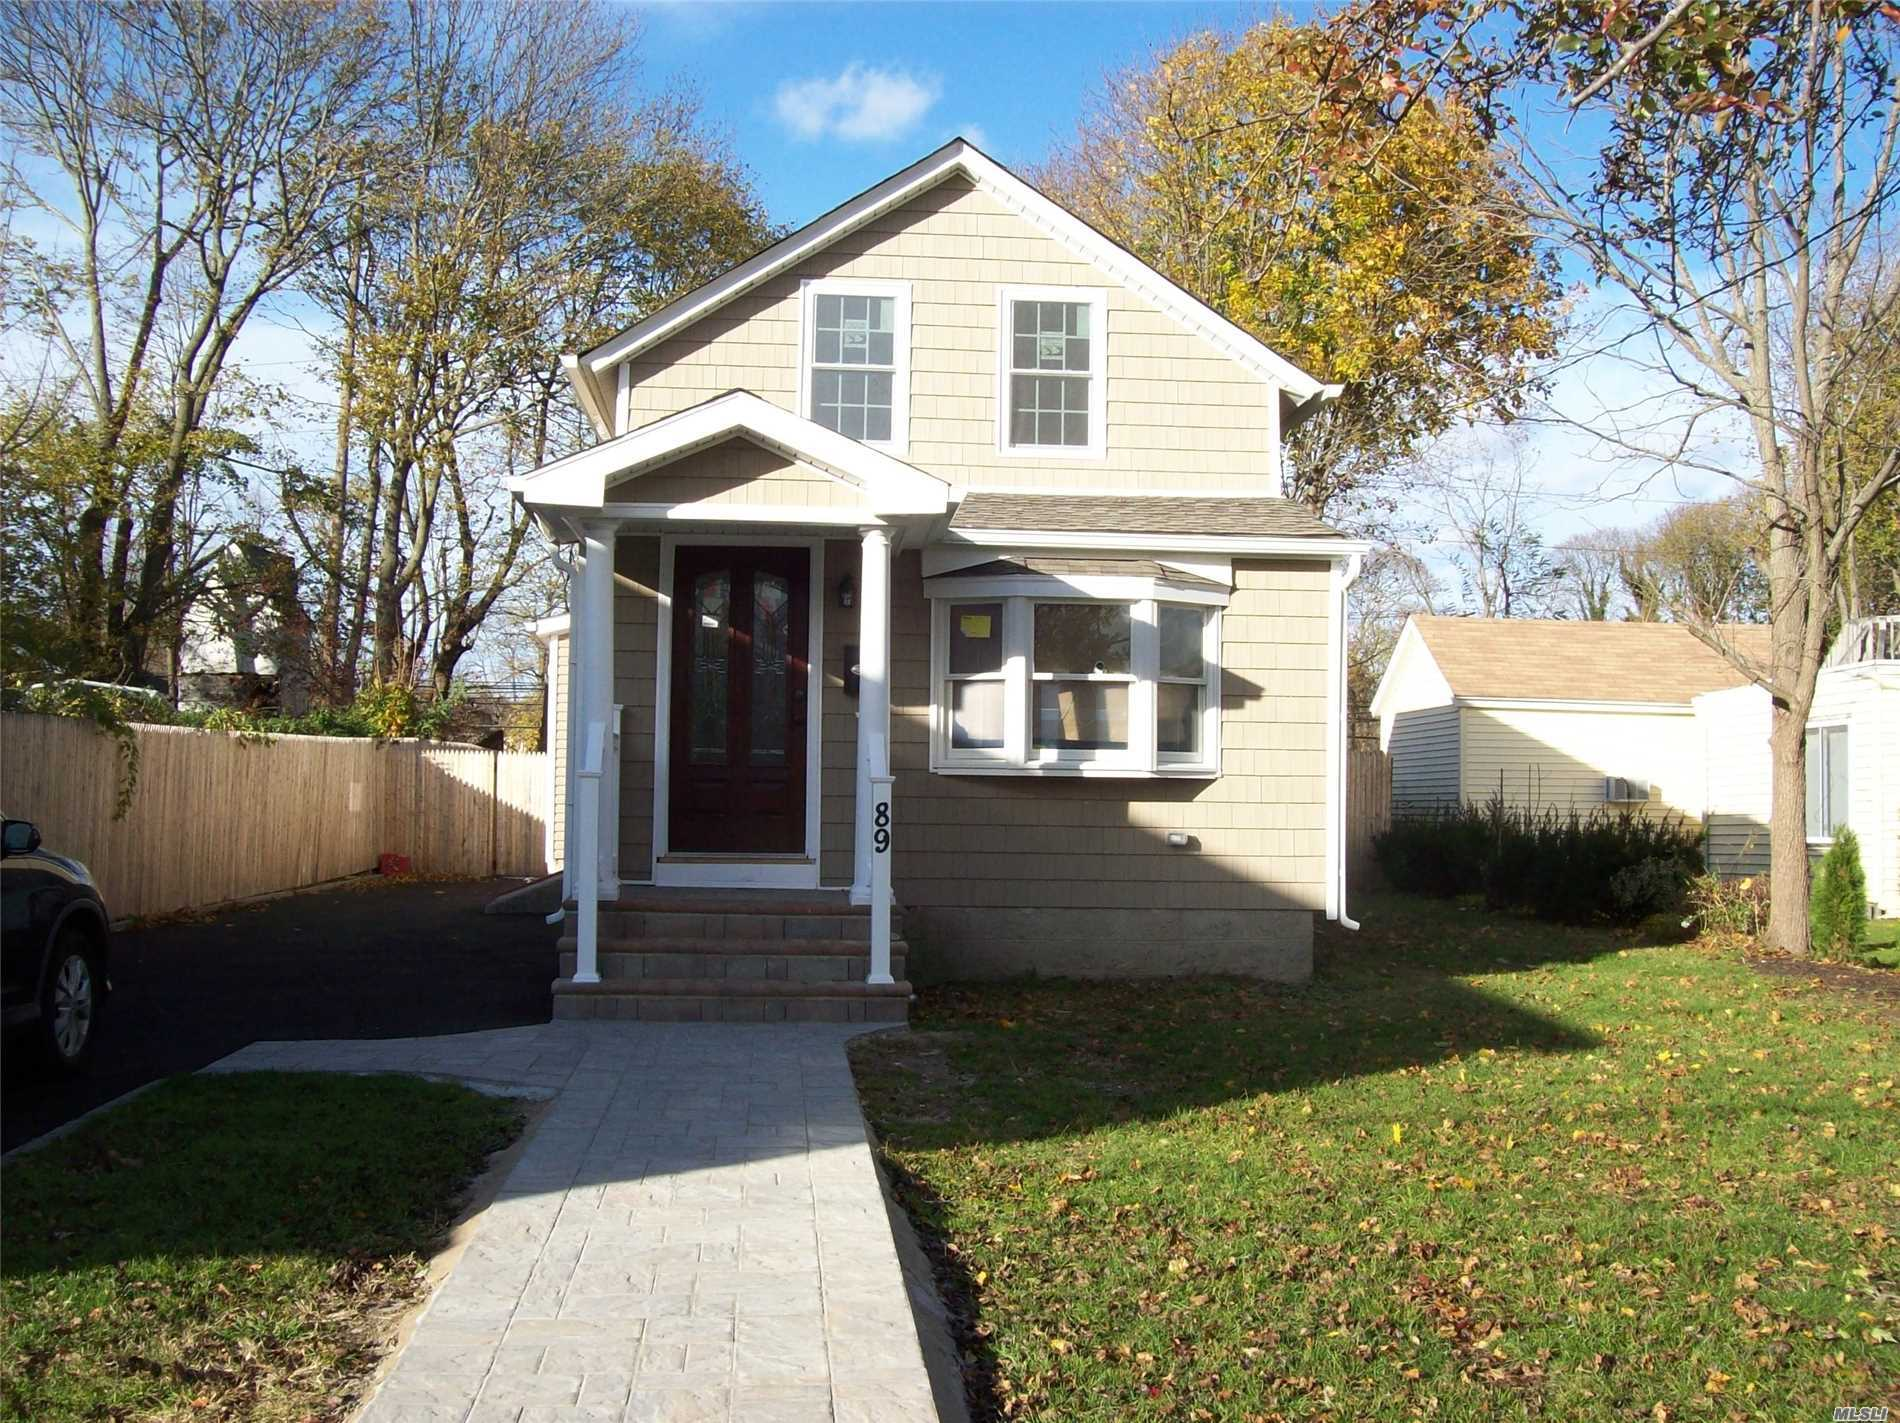 Photo of home for sale at 89 Hiddink St, Sayville NY